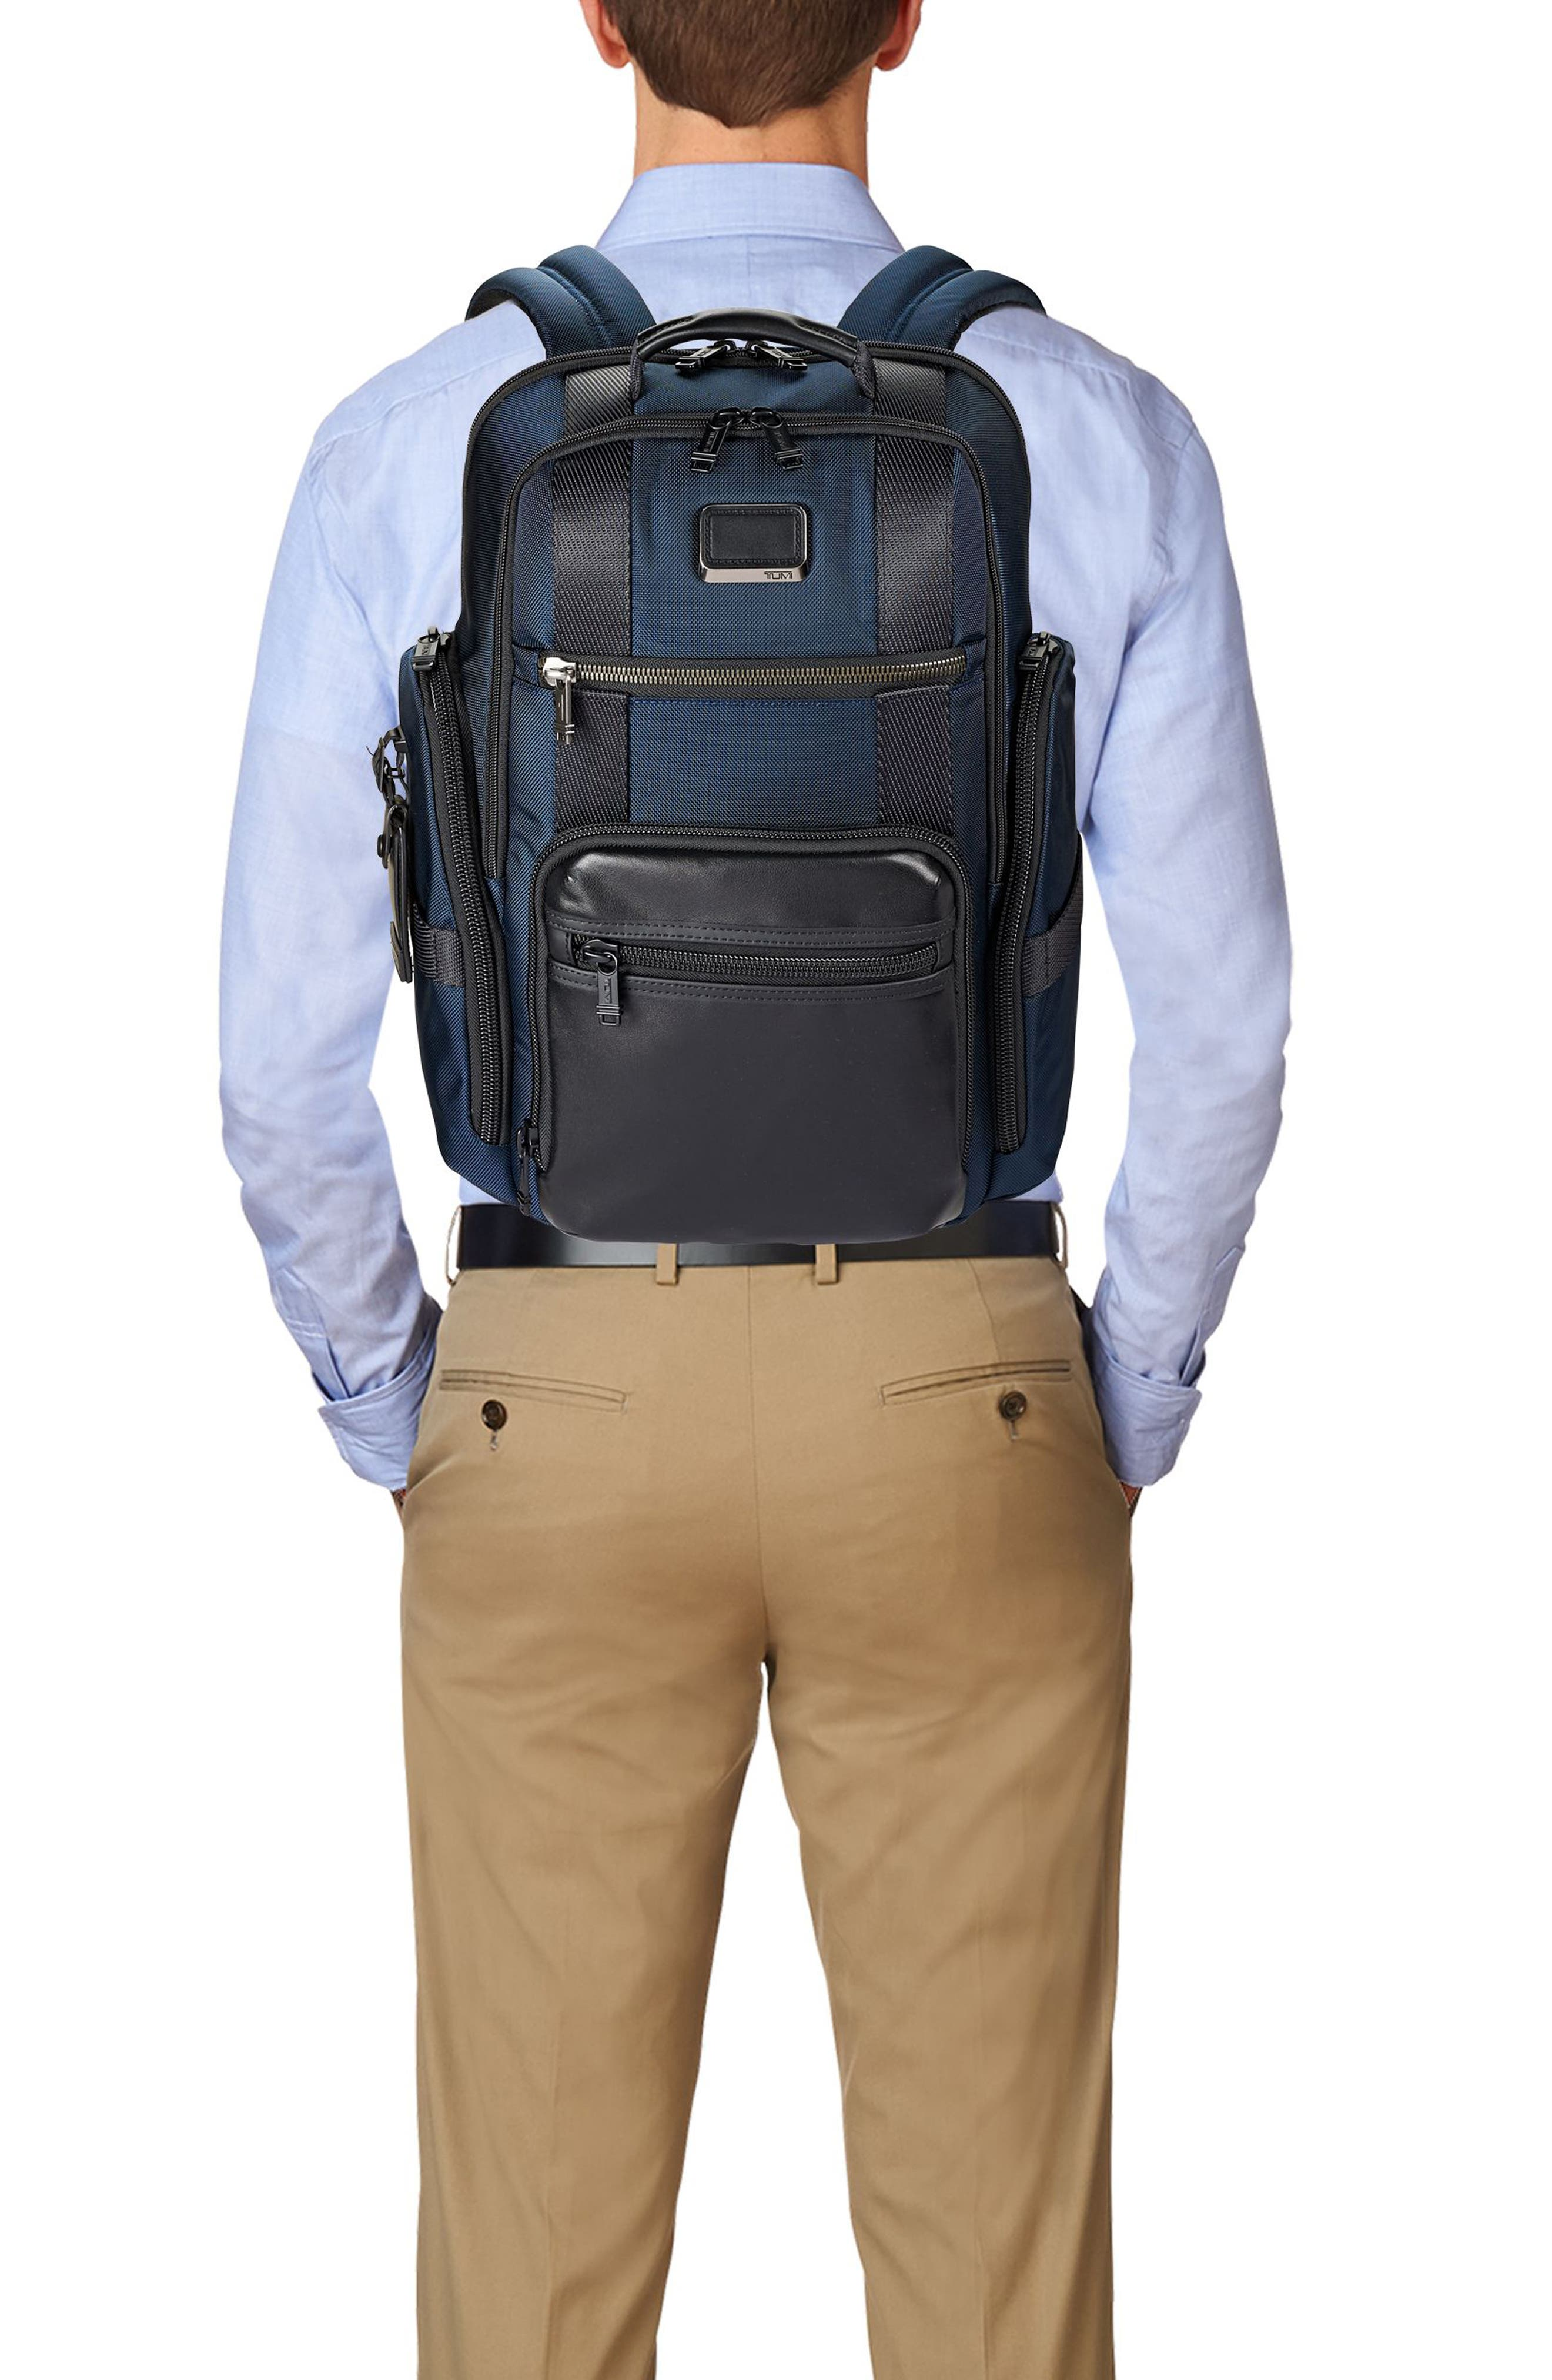 Alpha Bravo - Sheppard Deluxe Backpack,                             Alternate thumbnail 6, color,                             415